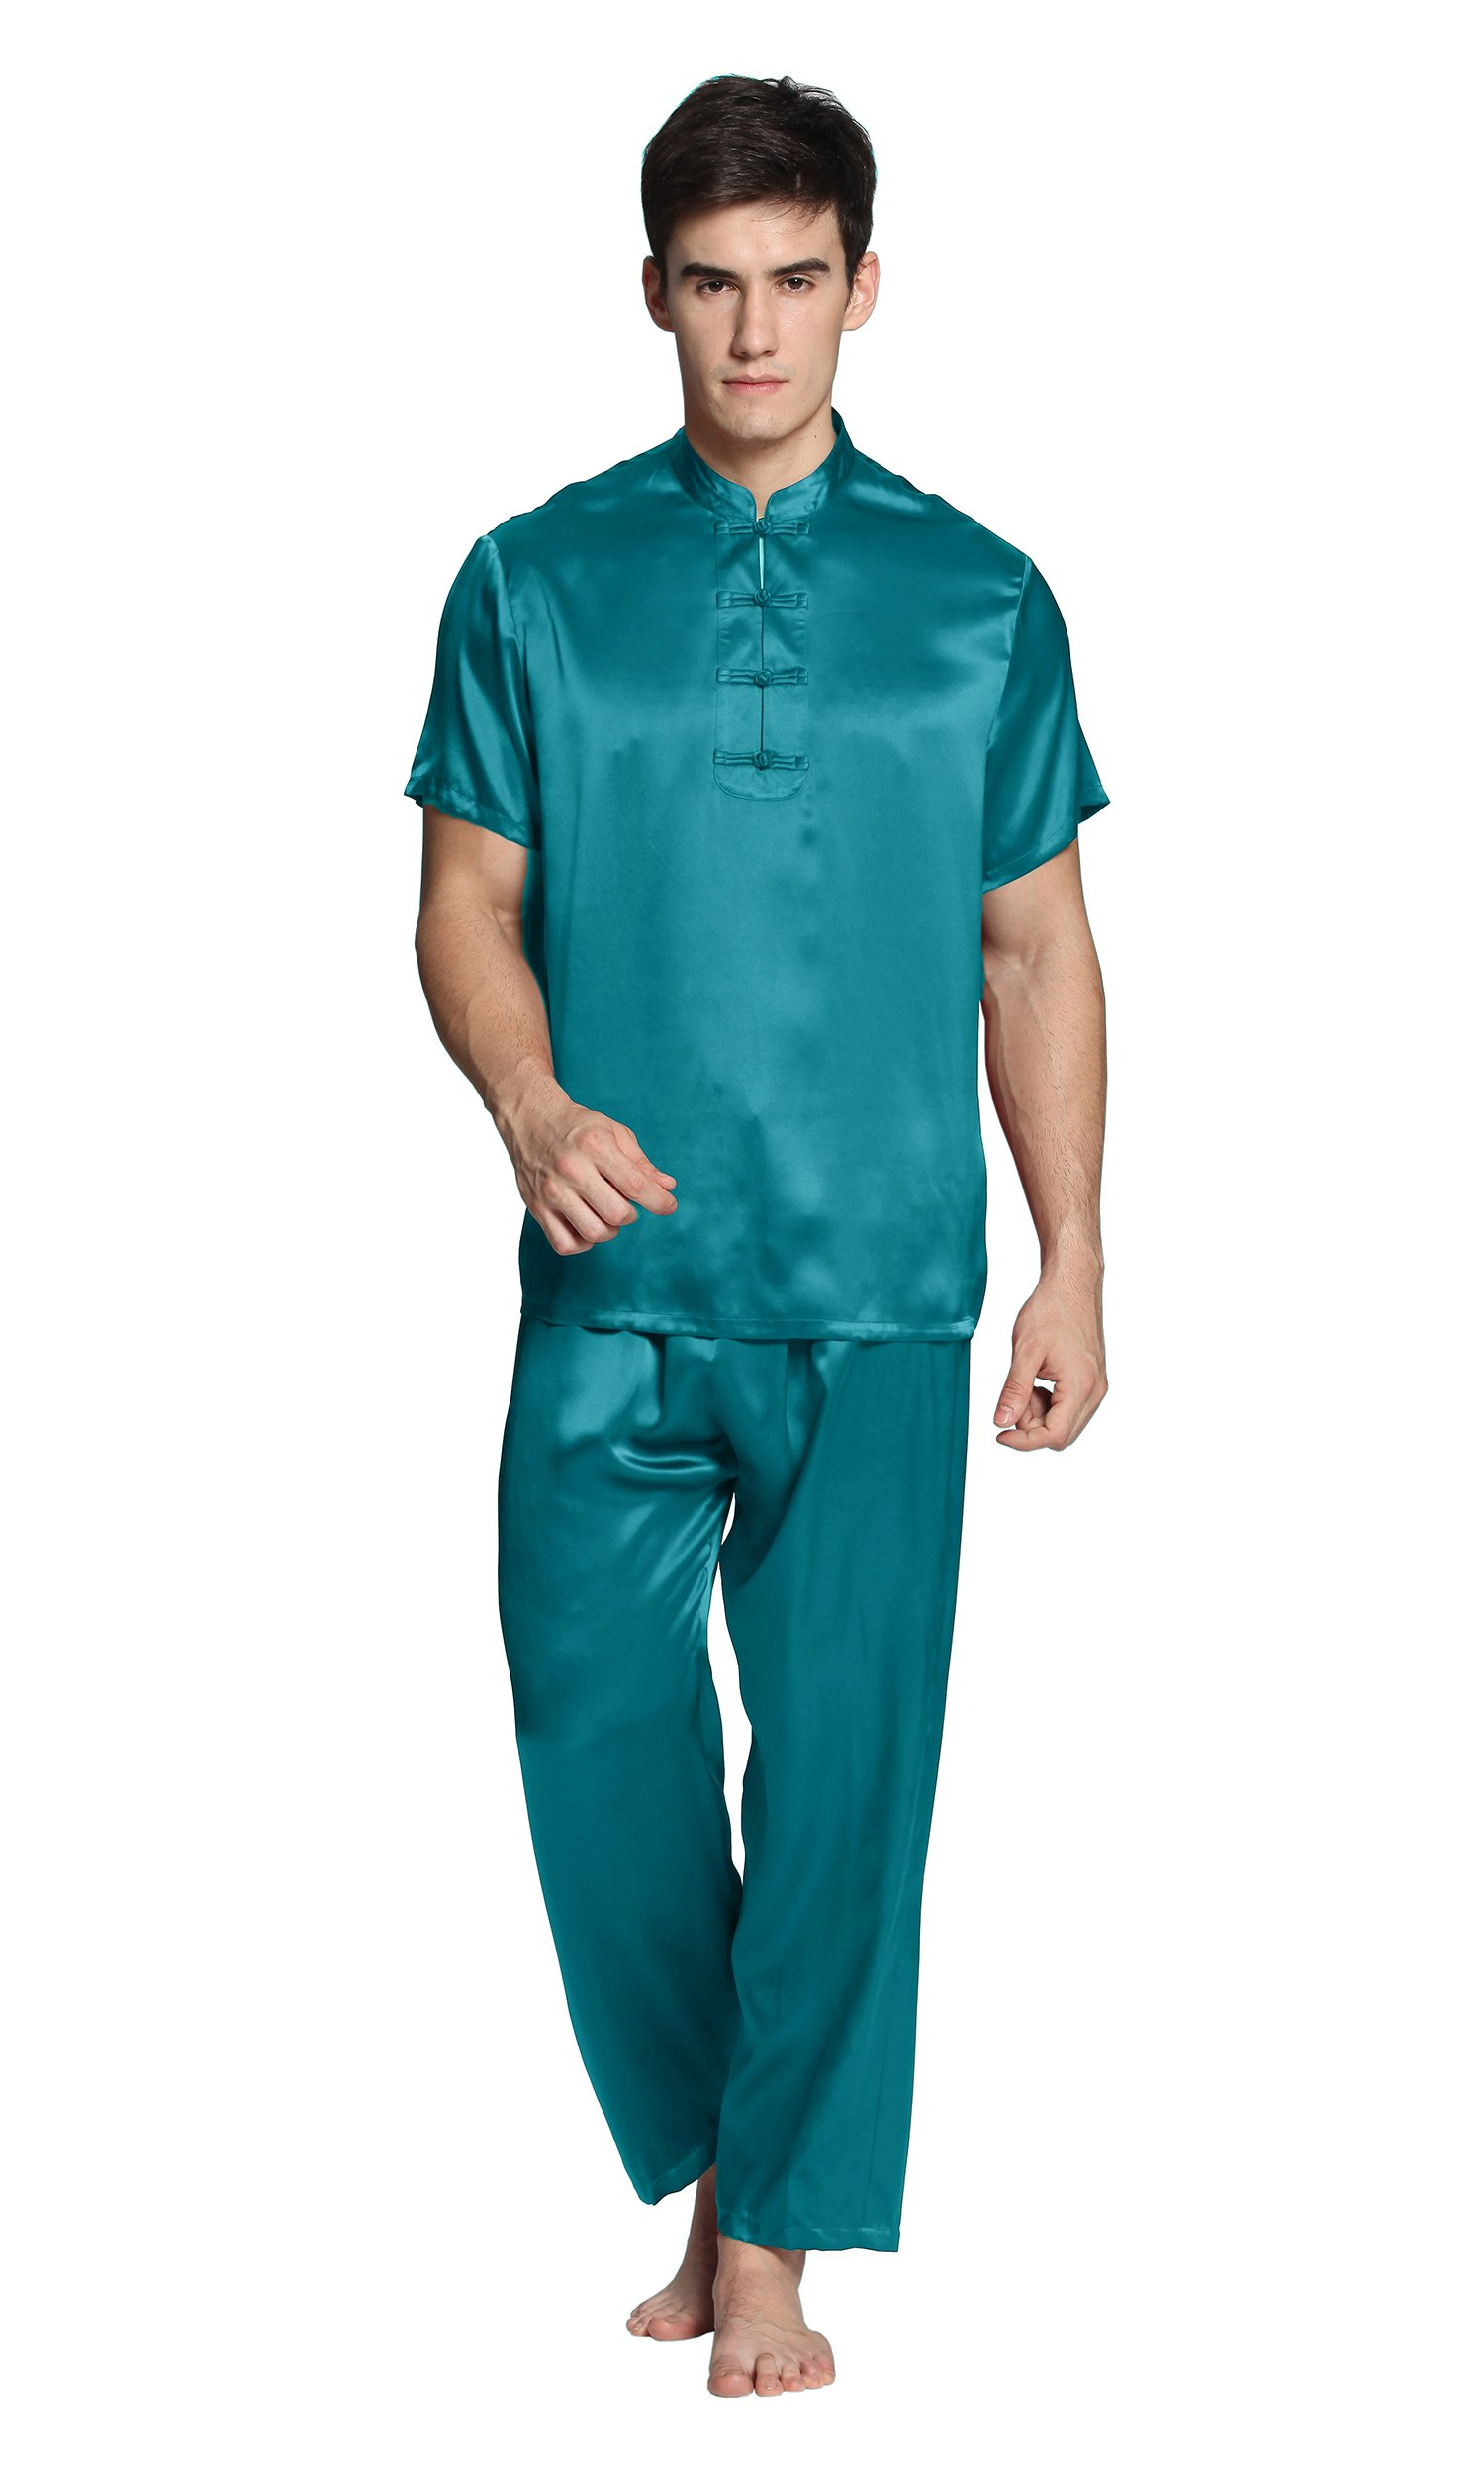 LilySilk Mens Silk Pajamas Set 22 Momme 100% Mulberry Pure Silk Classic Eastern Design Sleepwear For Lounge Dark Teal XXXL/48